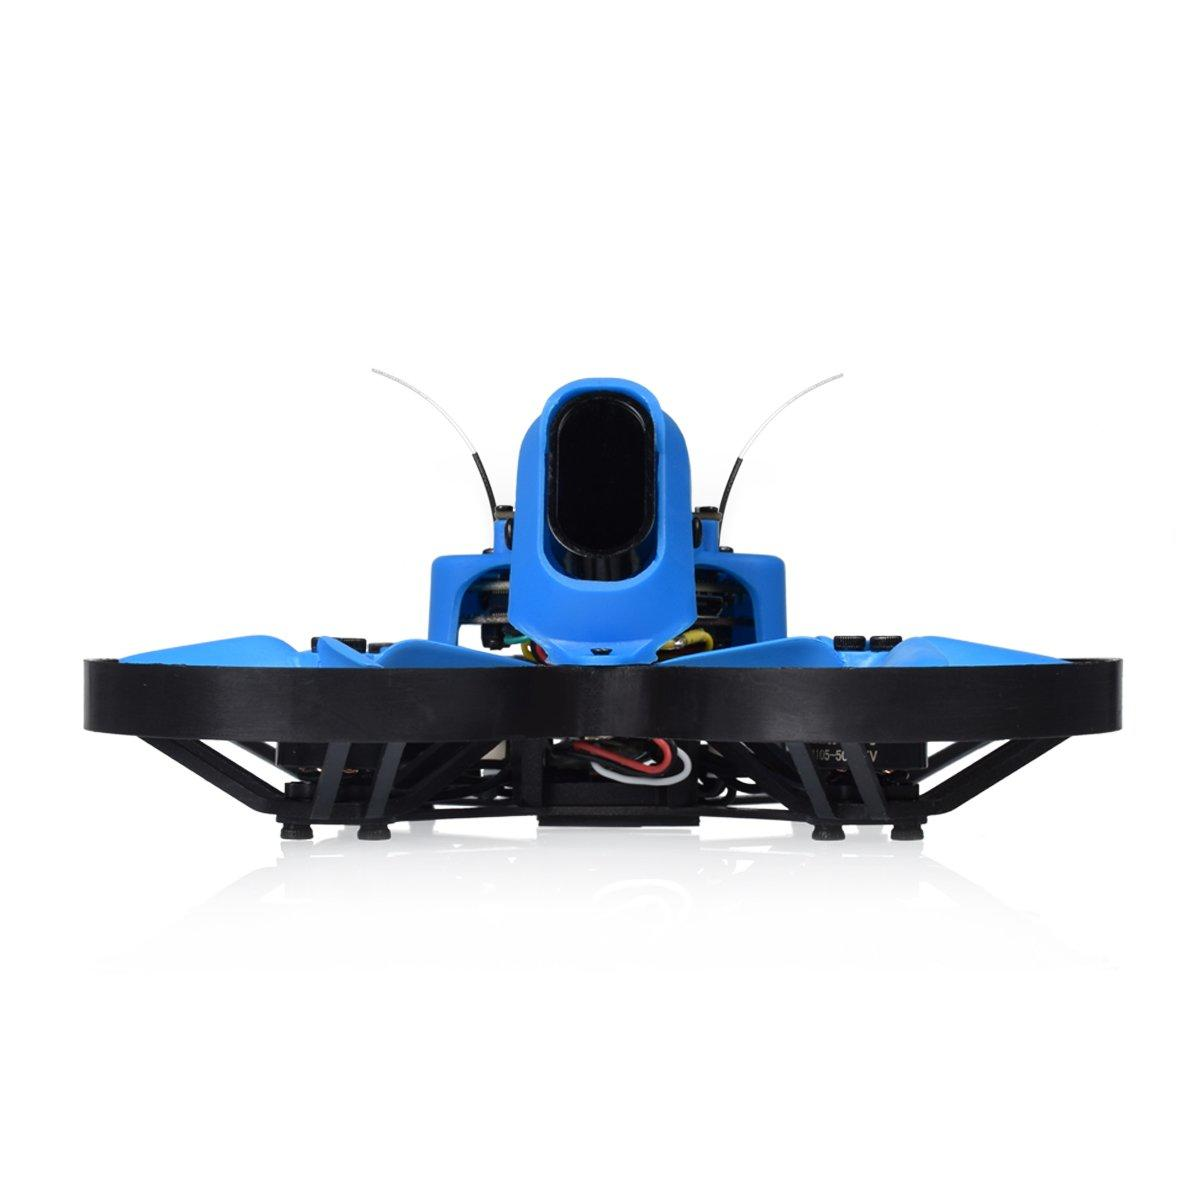 Beta85X 4K Whoop Quadcopter drone